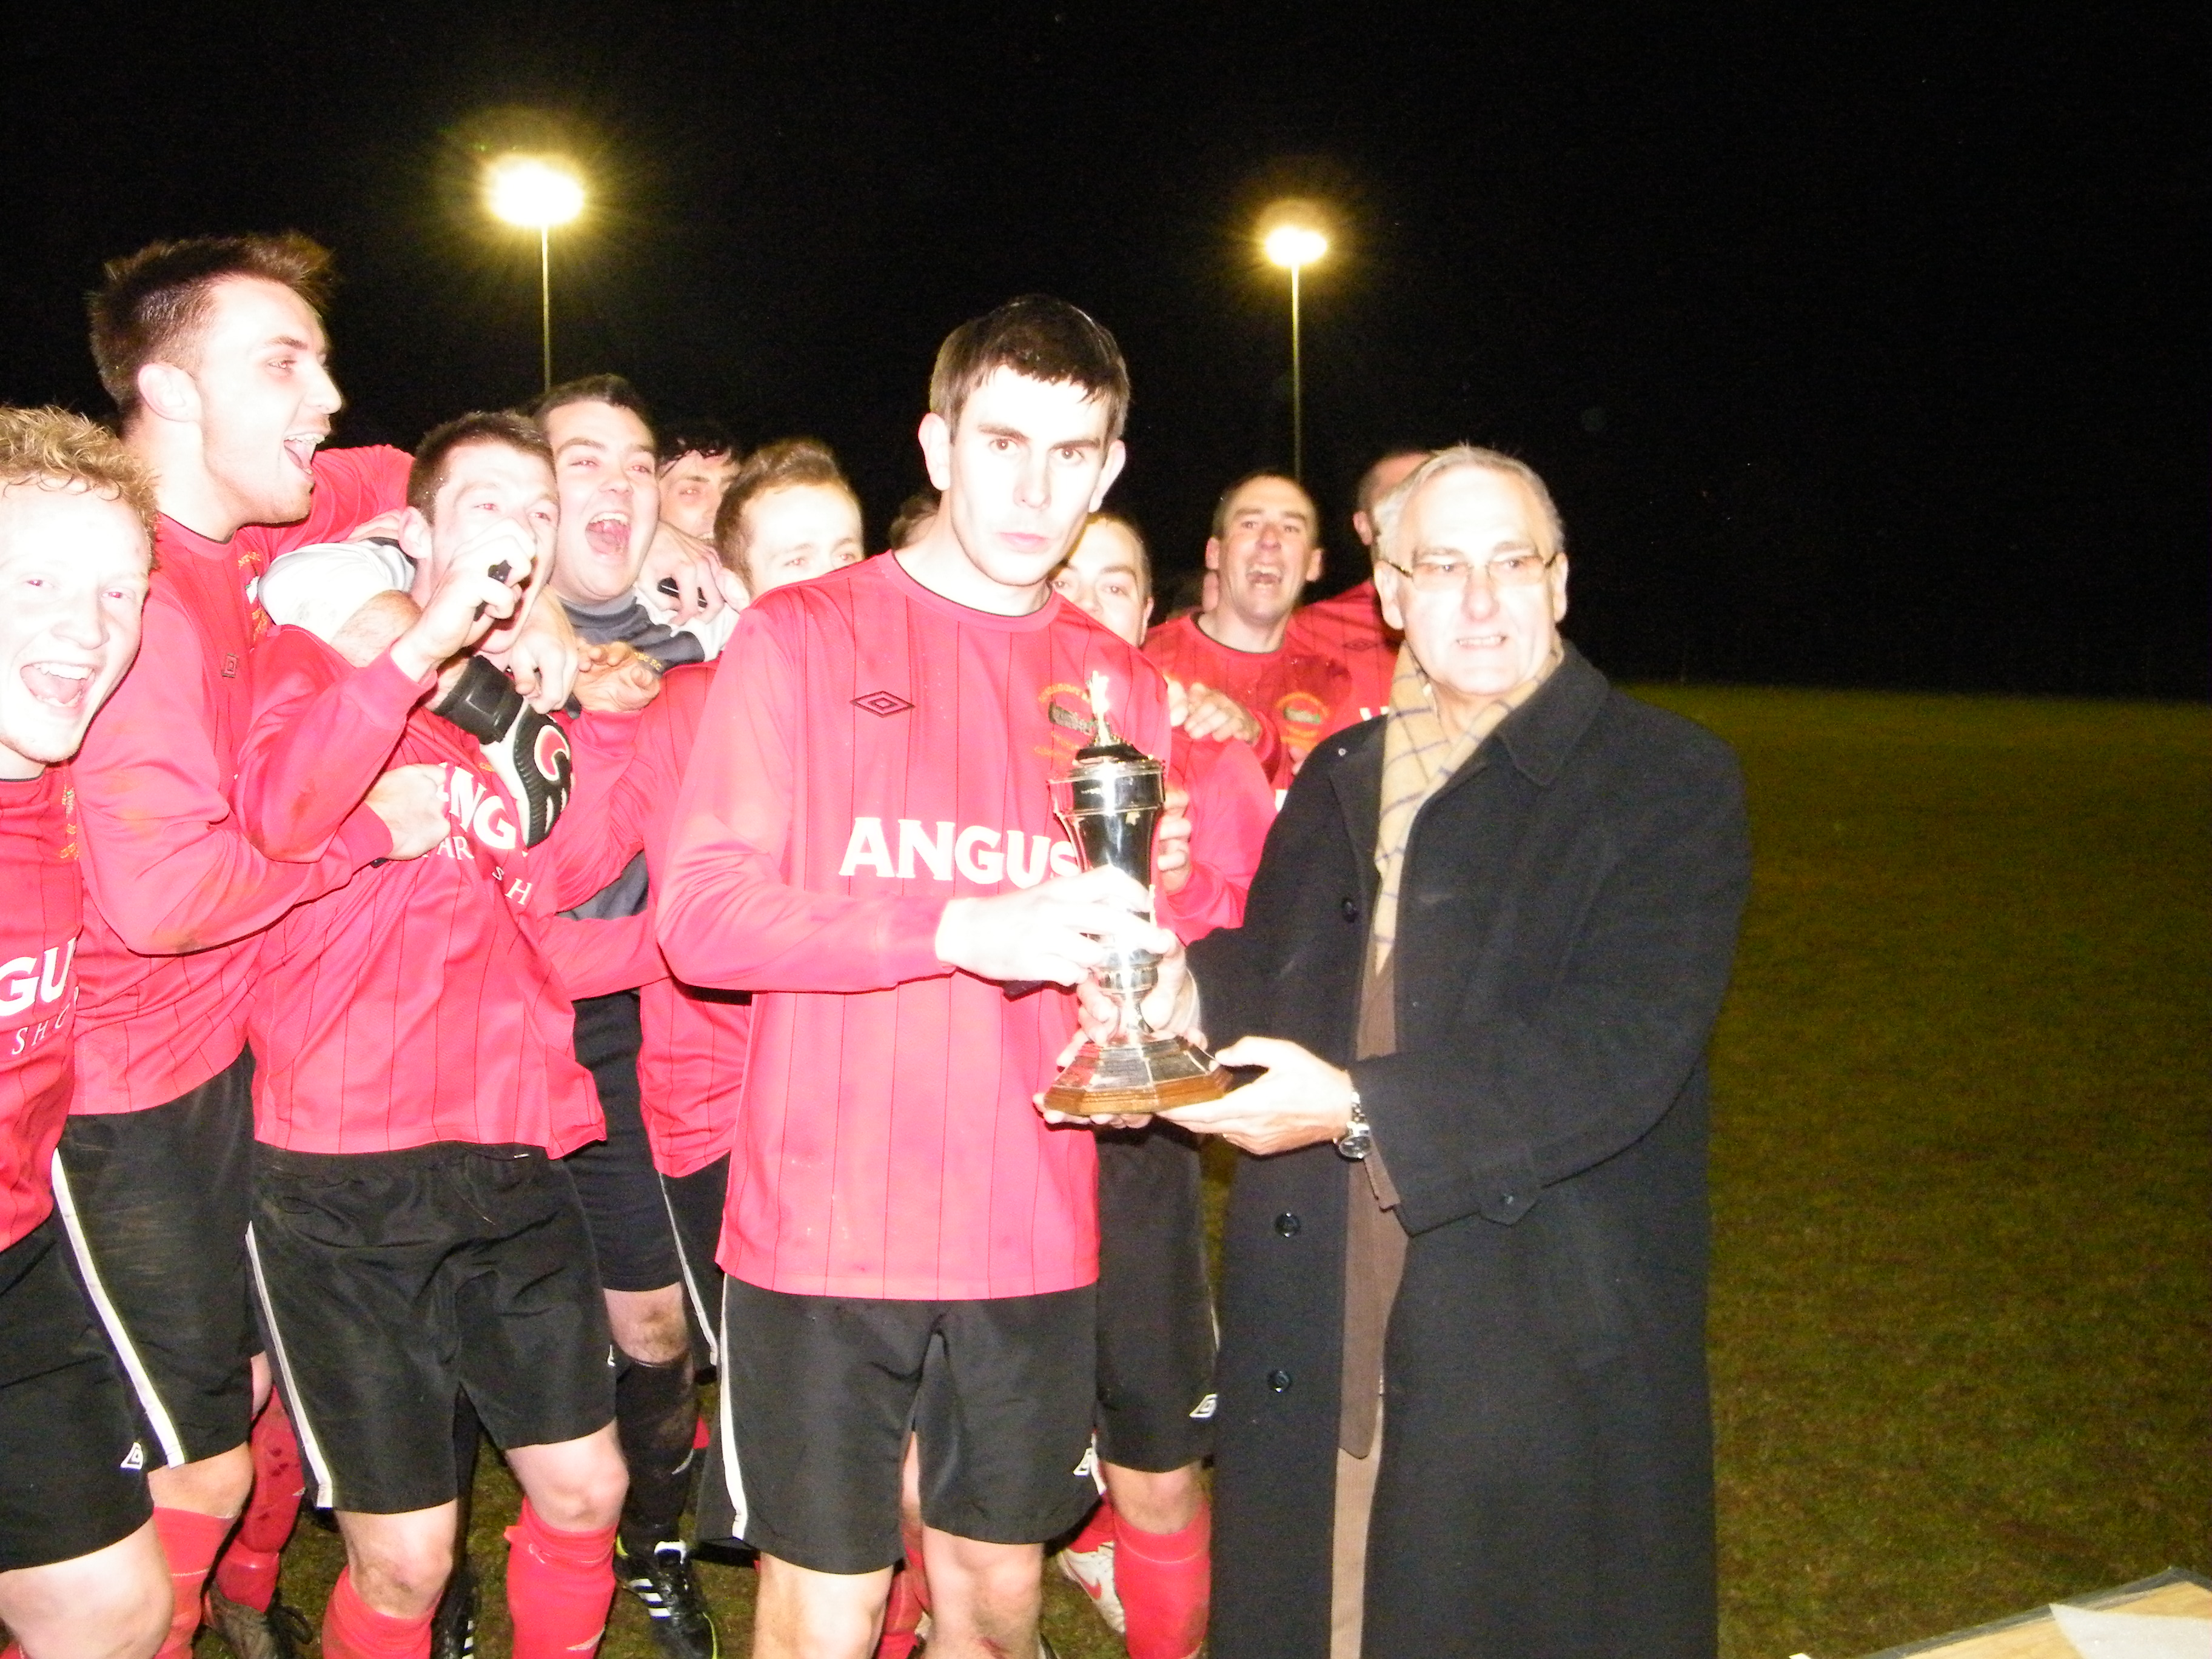 League Chairman Terry Pateman presenting the cup to the Rosemount captain